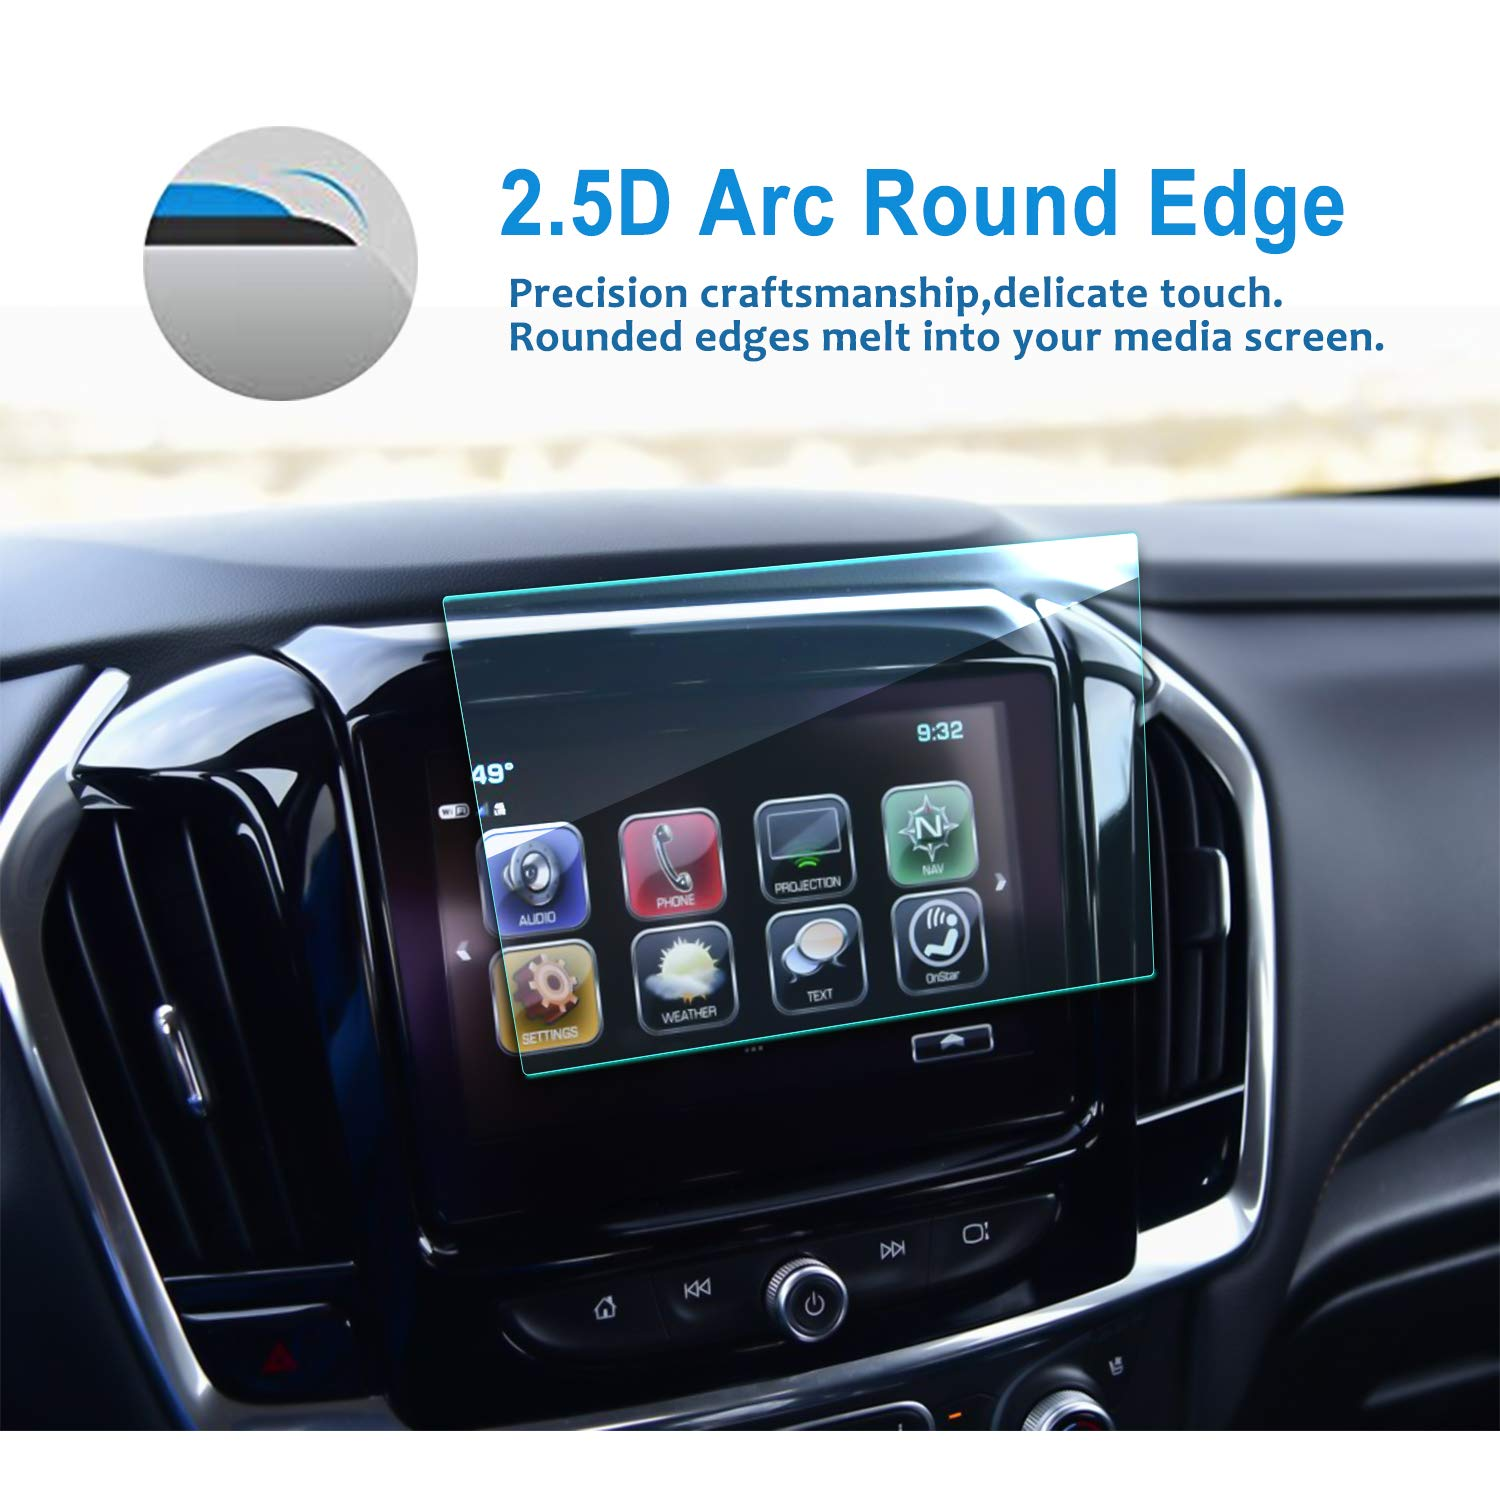 Upgrade LFOTPP Tempered Glass 9H Hardness Car Infotainment Display Center Touch Protective Film Scratch-Resistant LiFan 2018 2019 Chevrolet Traverse 8-Inch MyLink Car Navigation Screen Protector